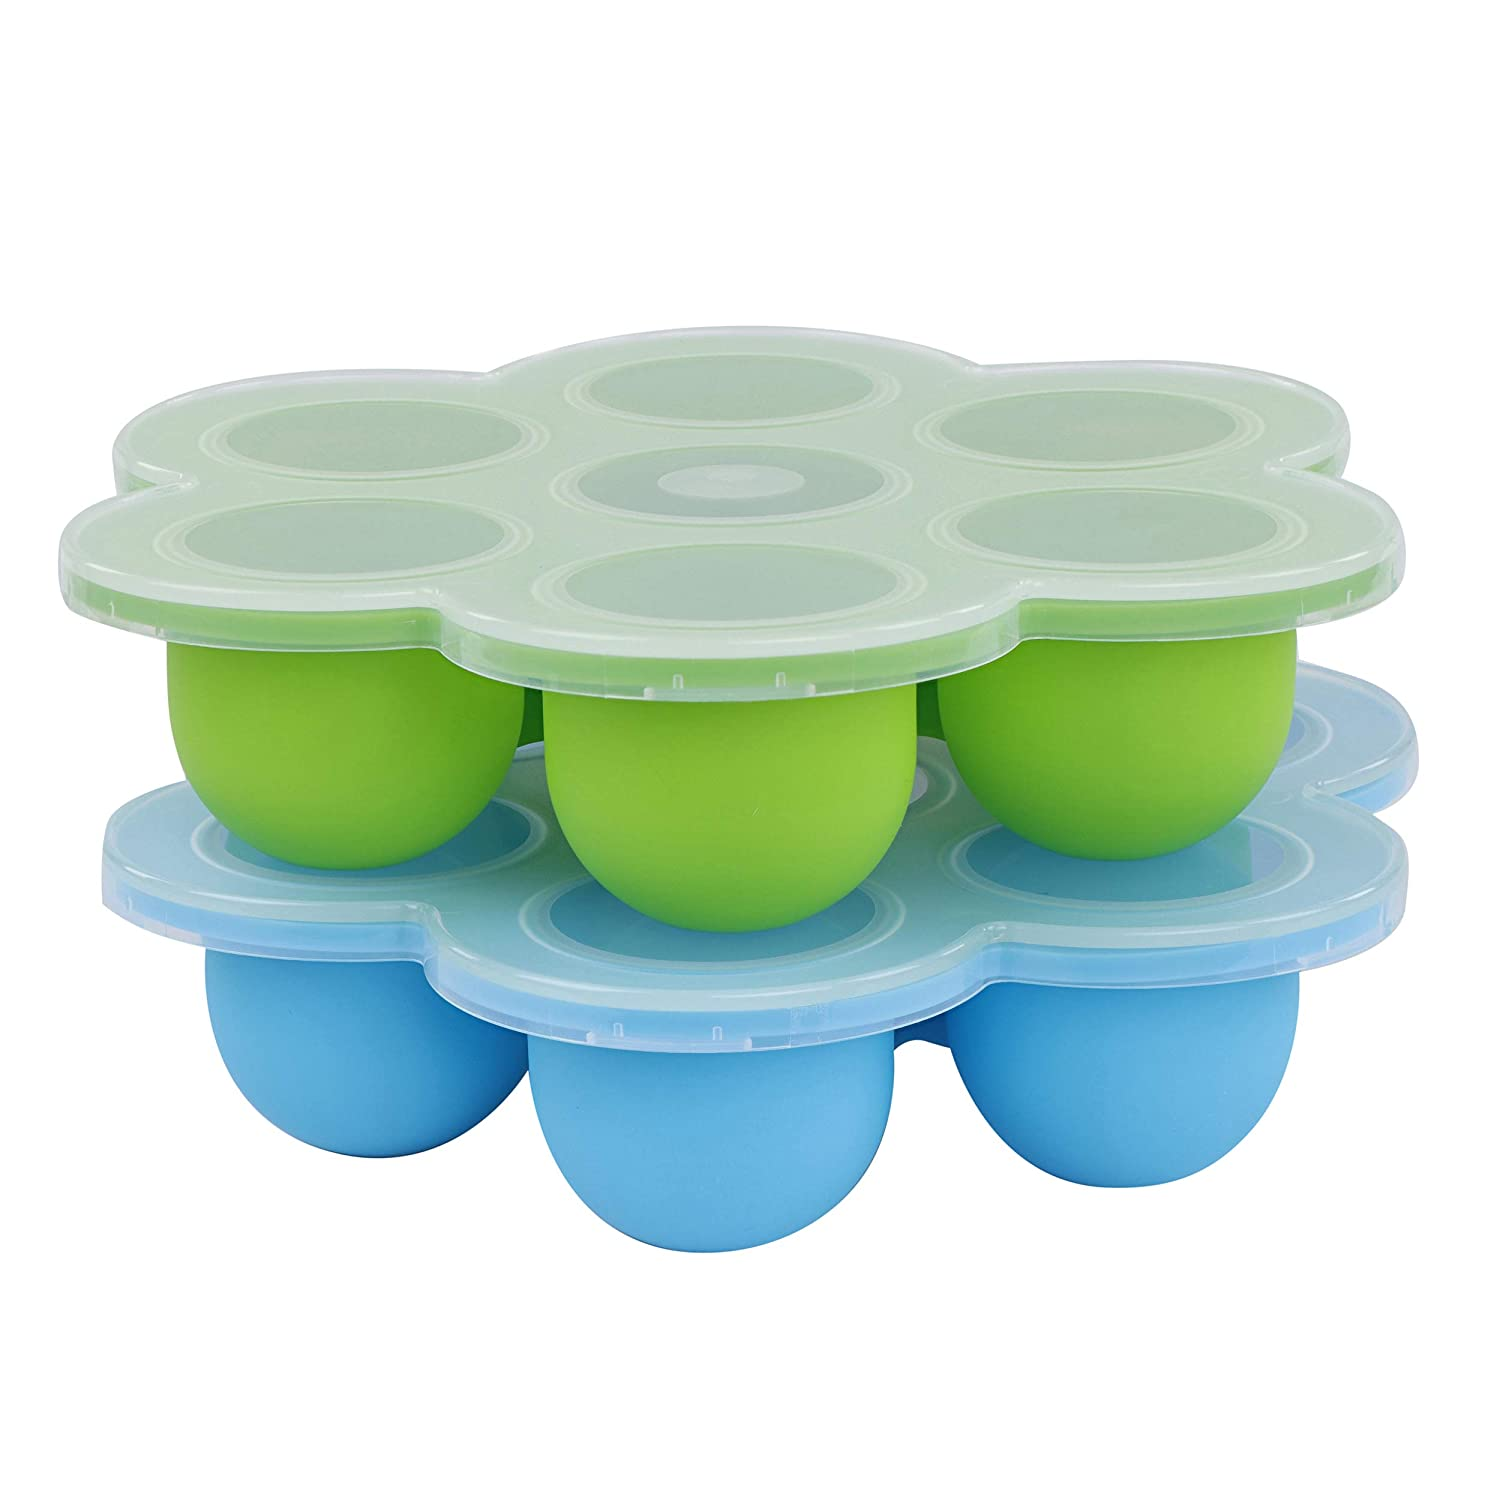 Acorn Baby Silicone Food Container with Thin Lid, 2PK - Blue and Green Meal Prep Container Freezer Trays